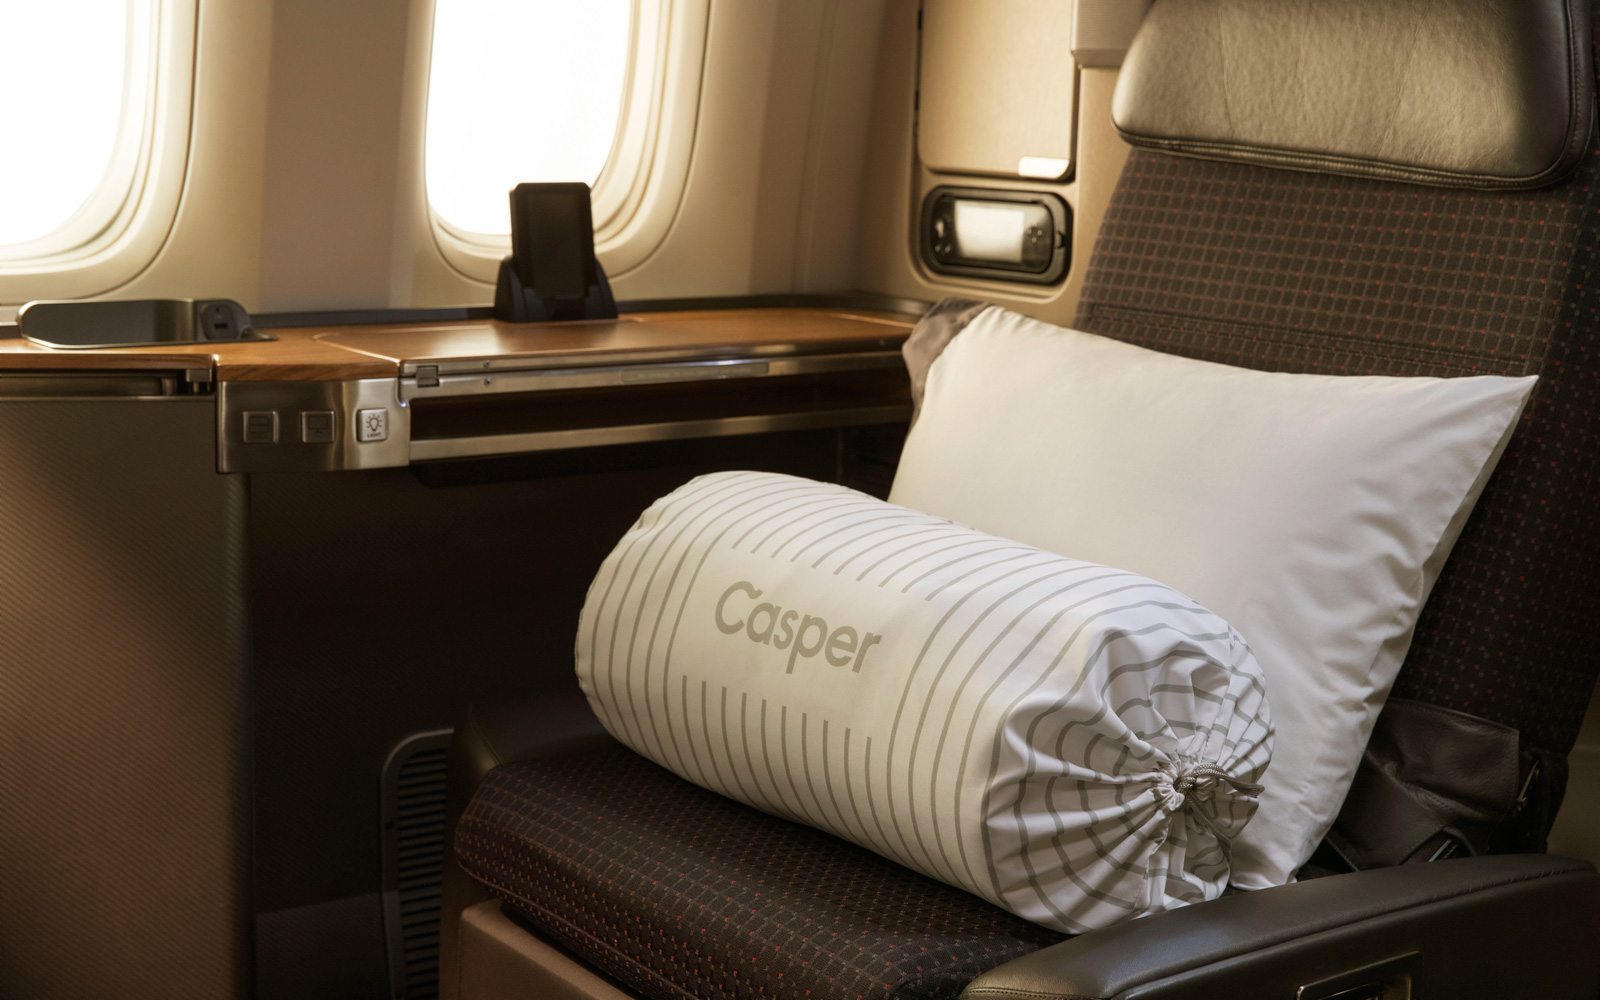 Casper pillow on American Airlines seat.